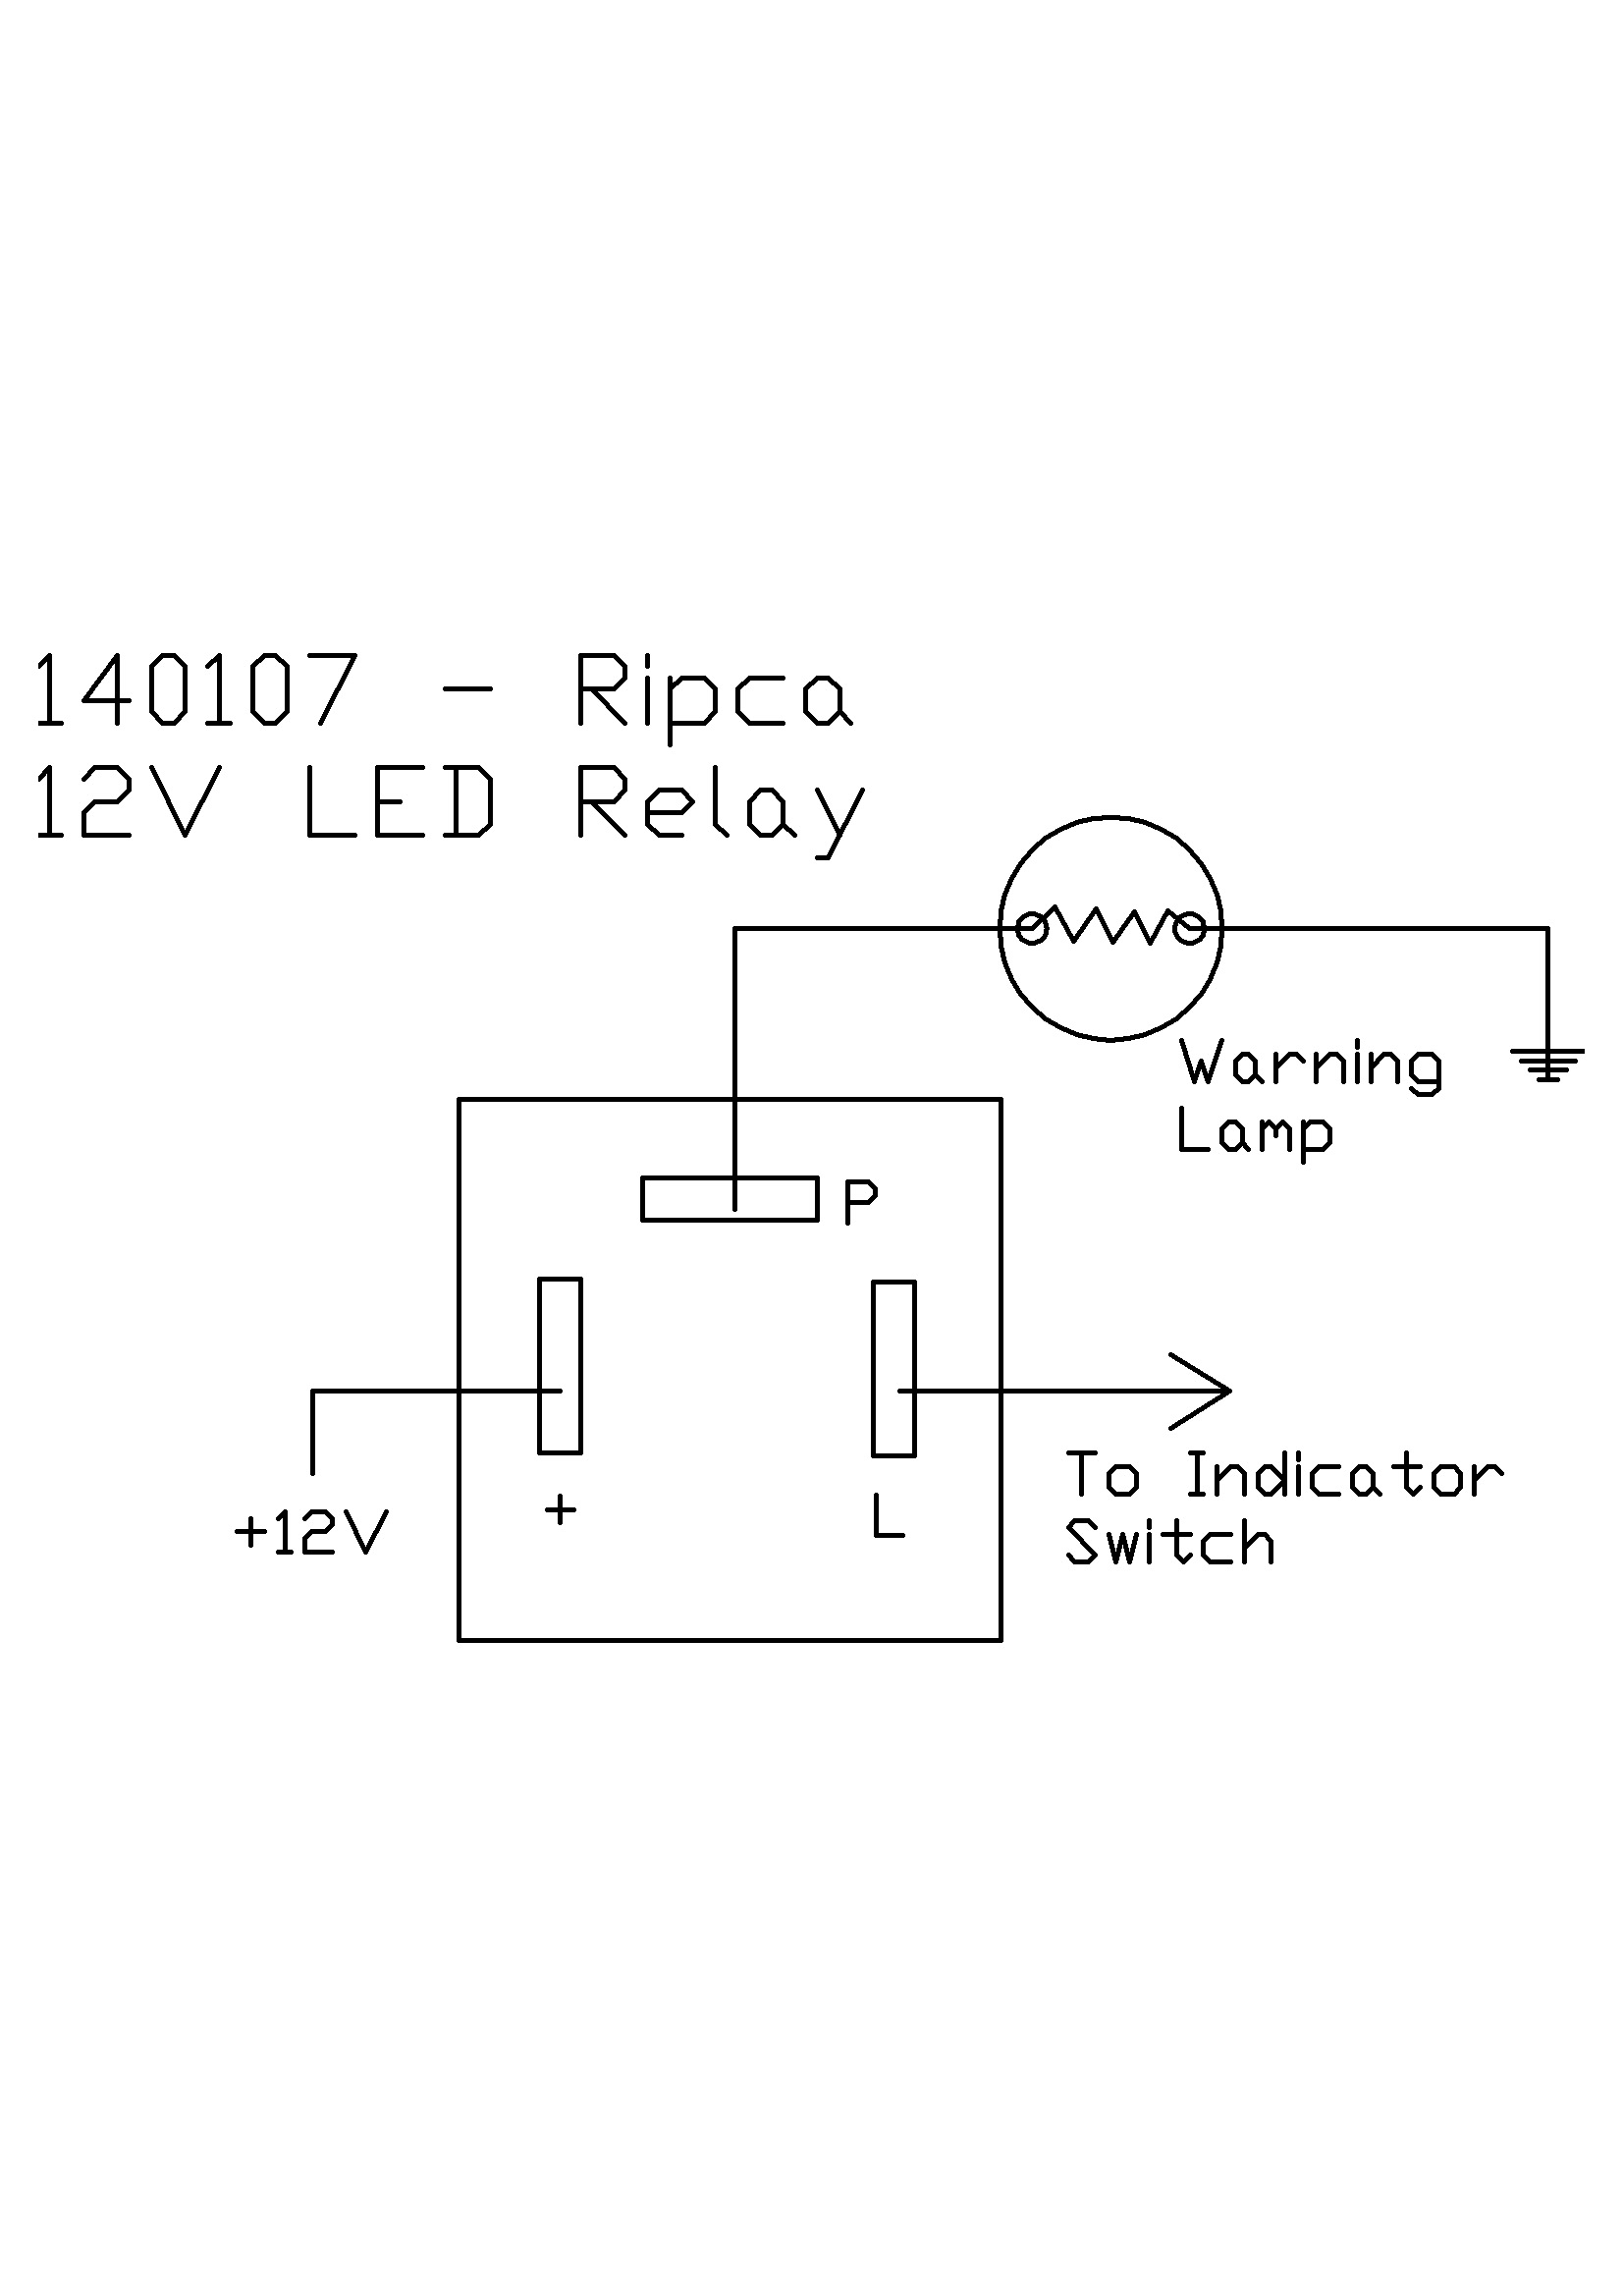 140107 ripca 12 volt led flasher unit flasher unit wiring diagram at soozxer.org